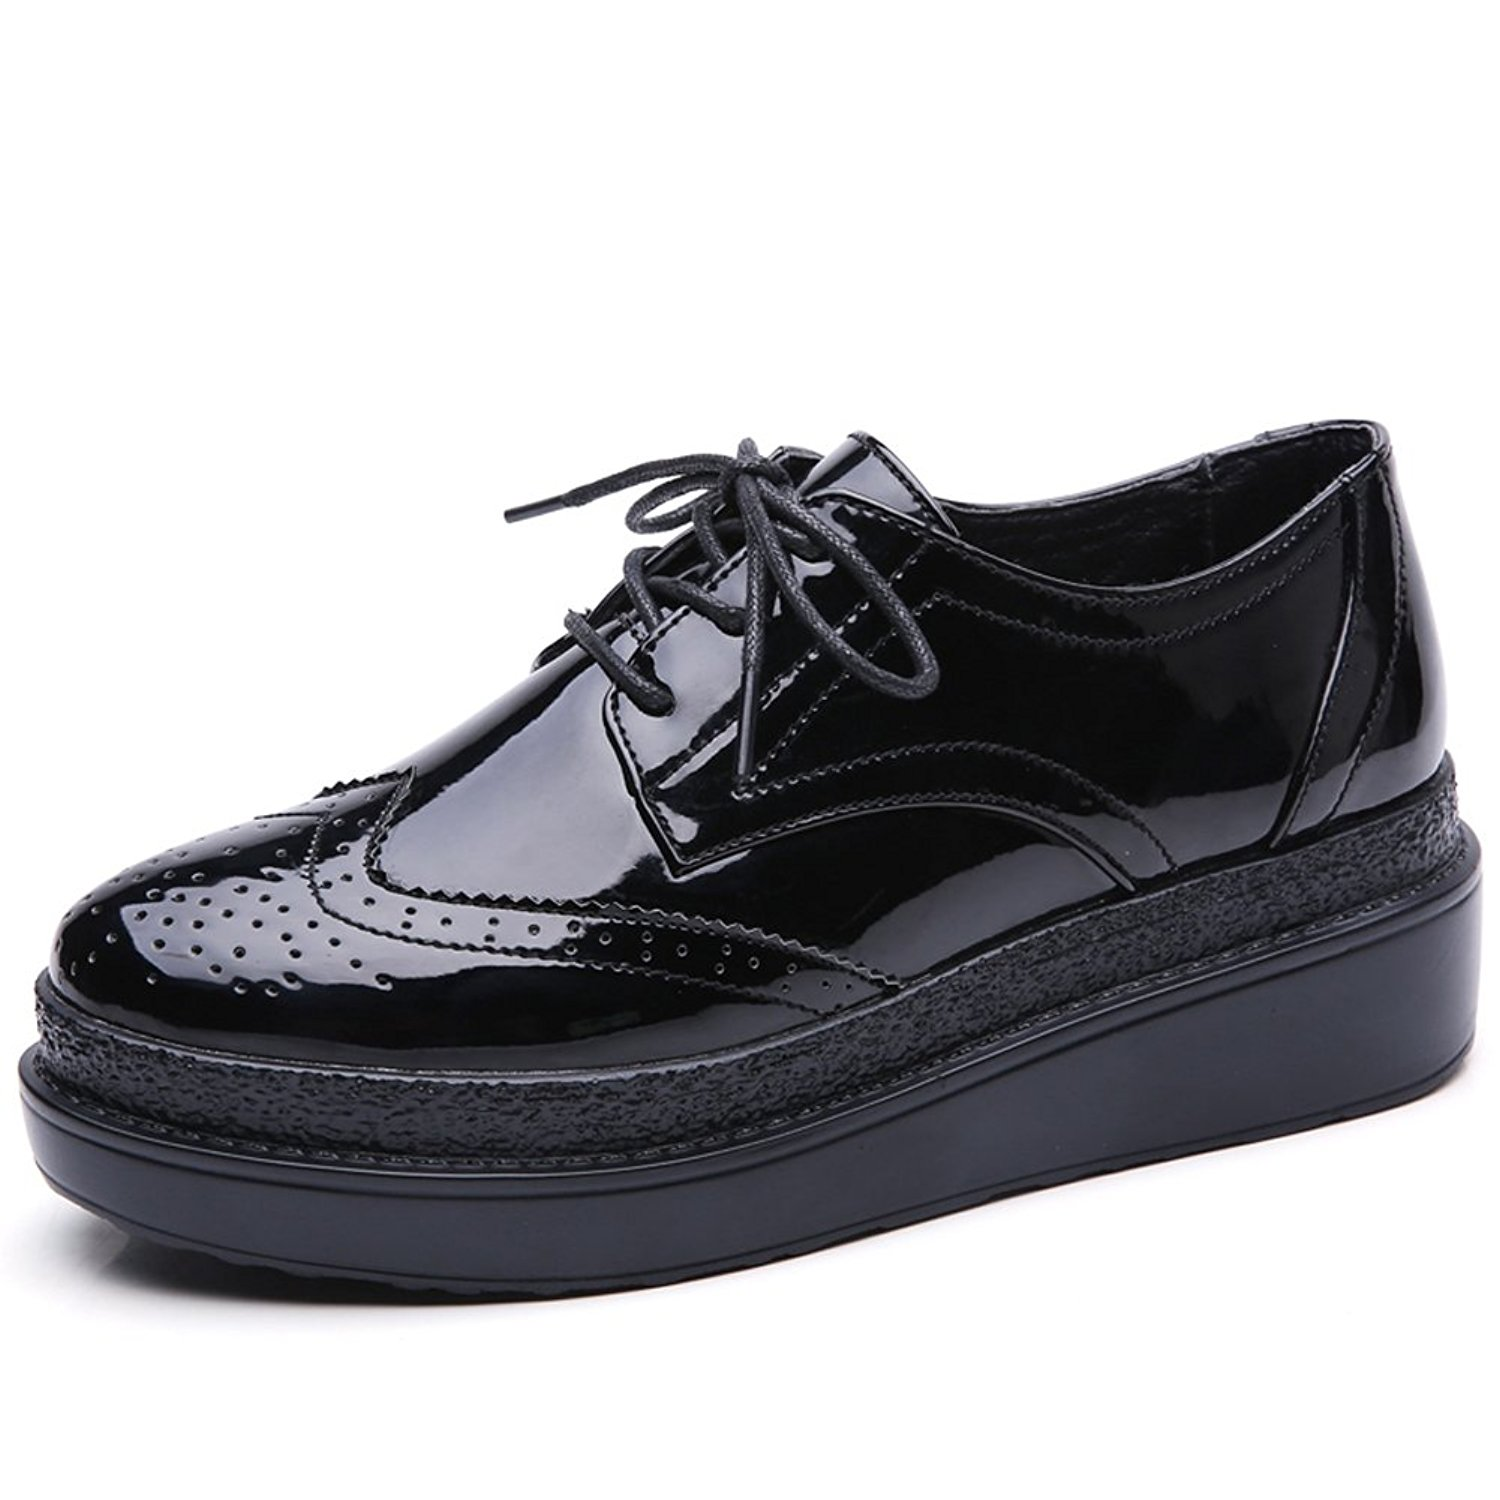 02806a838c Get Quotations · HKR Women Patent PU Leather Wingtip Oxfords Lace up  Platform Wedge Brogues Sneakers Shoes